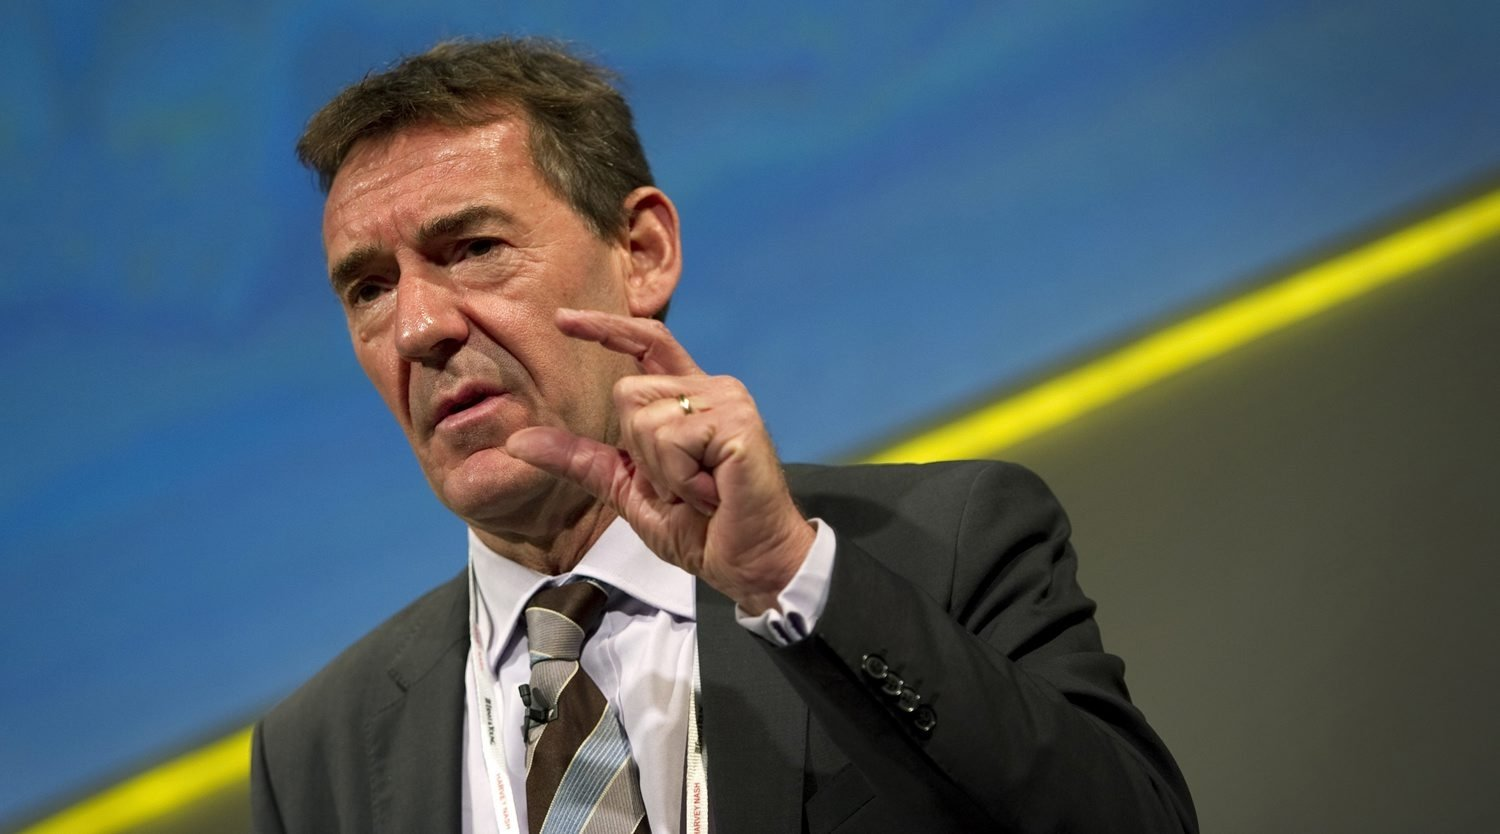 Jim O'Neill, then chairperson of Goldman Sachs Asset Management speaks at the Confederation of British Industry (CBI) annual conference in London, on Nov. 21, 2011. (AFP Photo)